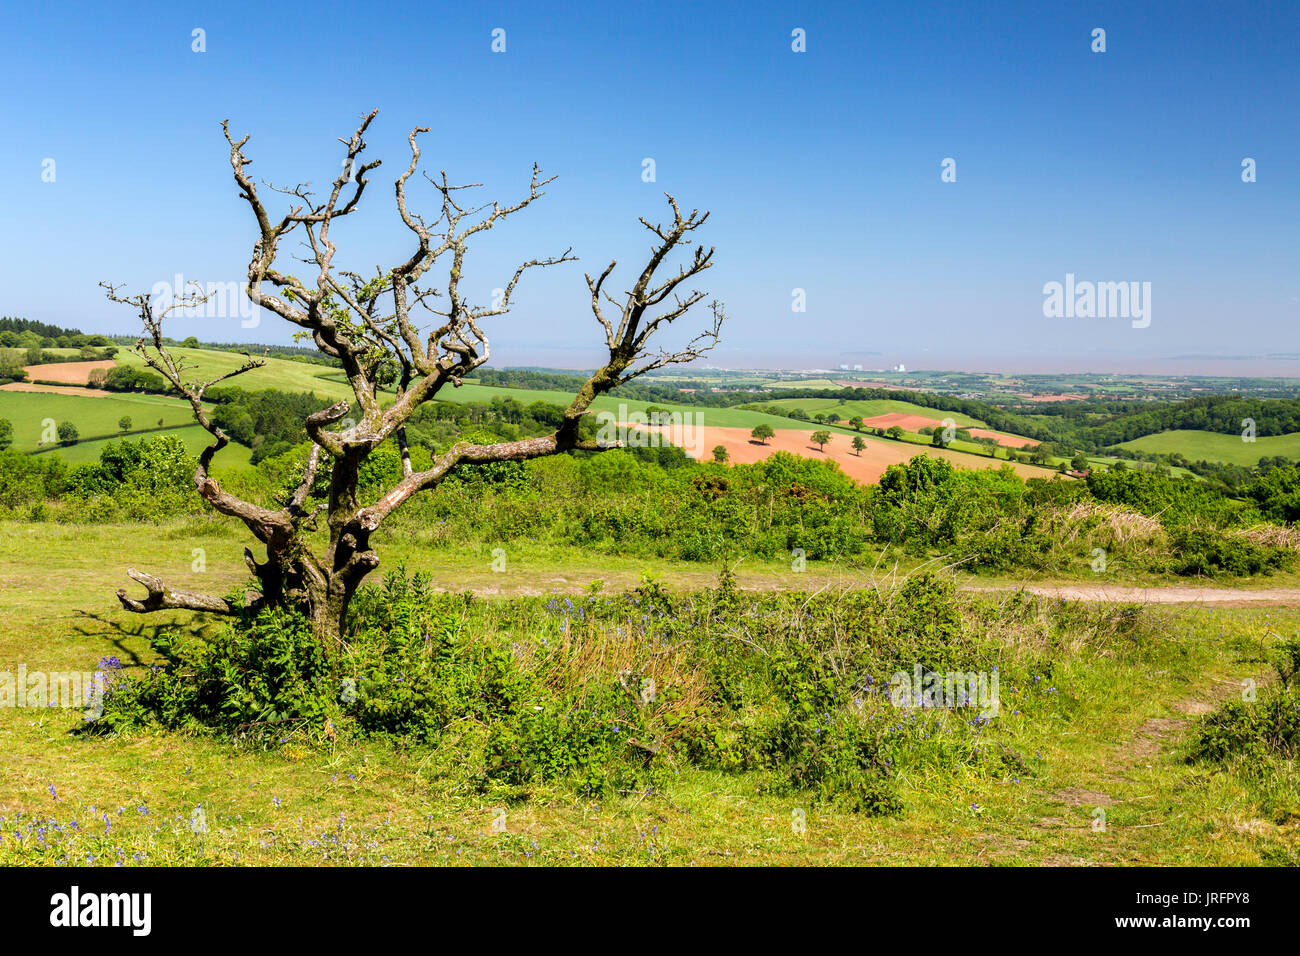 Looking north from the summit of Cothelstone Hill on the Quantock Hills towards Hinkley Point and the Bristol Channel, Somerset, England, UK - Stock Image